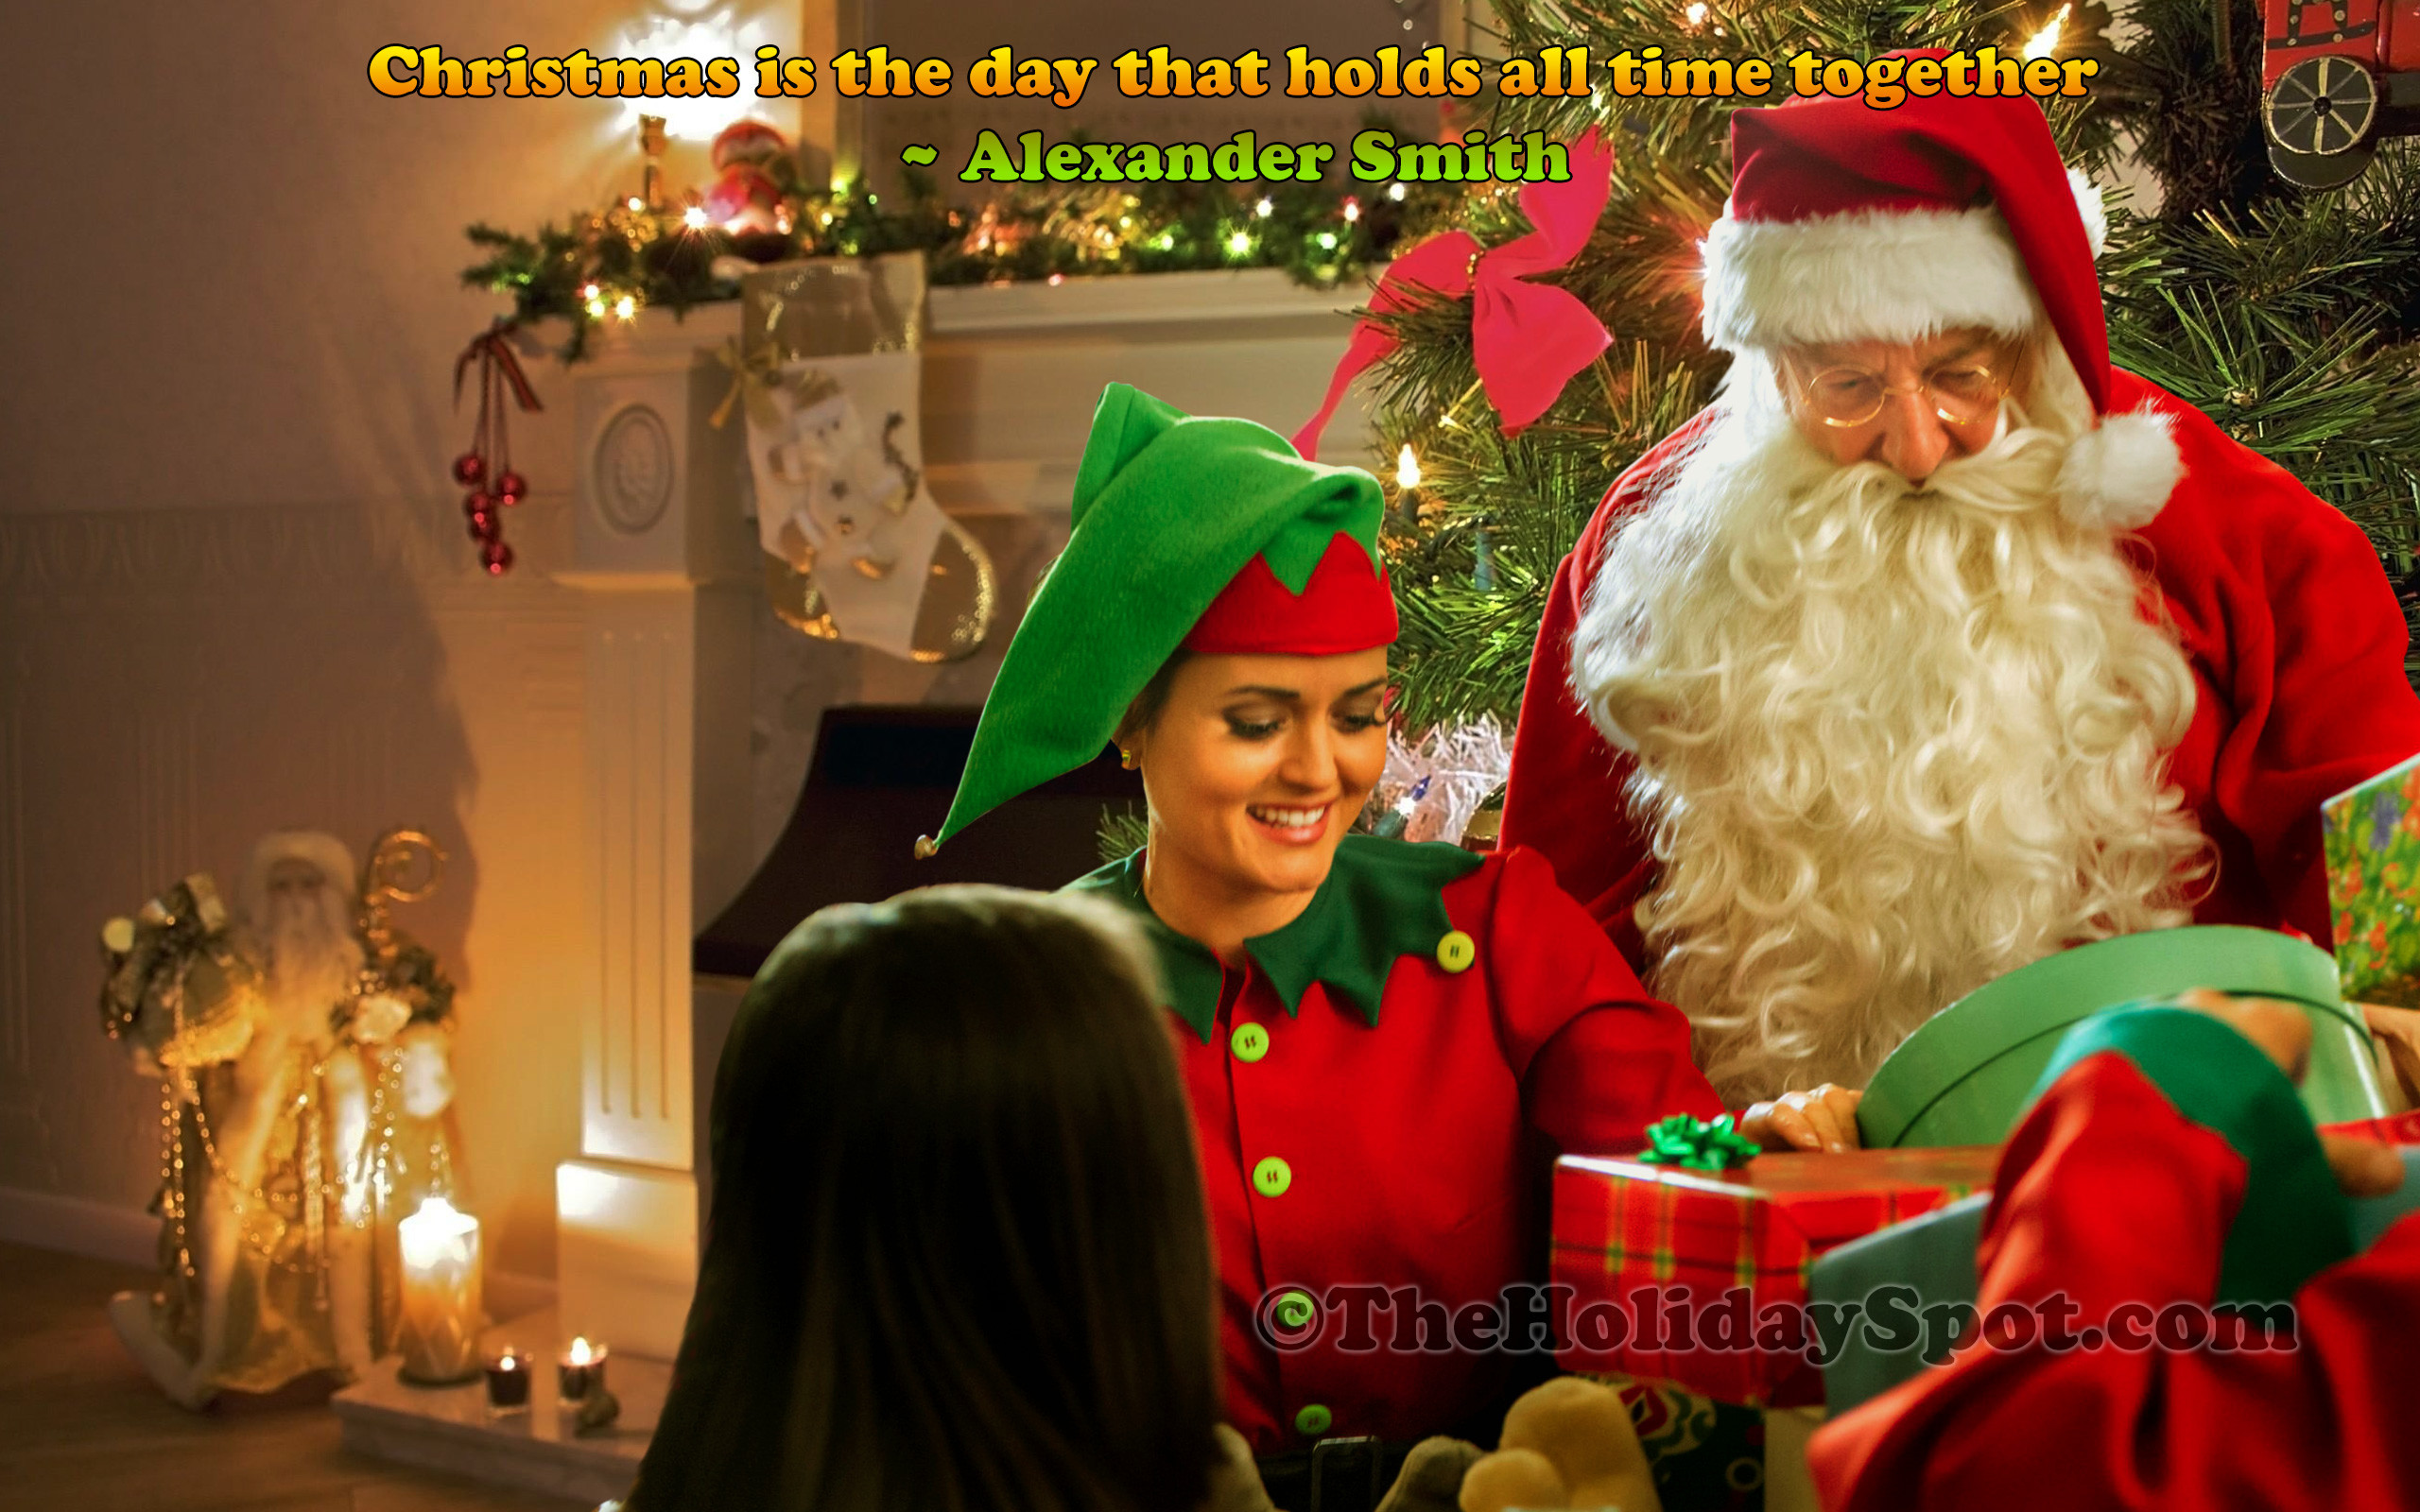 2560x1600 Wallpaper - Christmas celebration with Santa